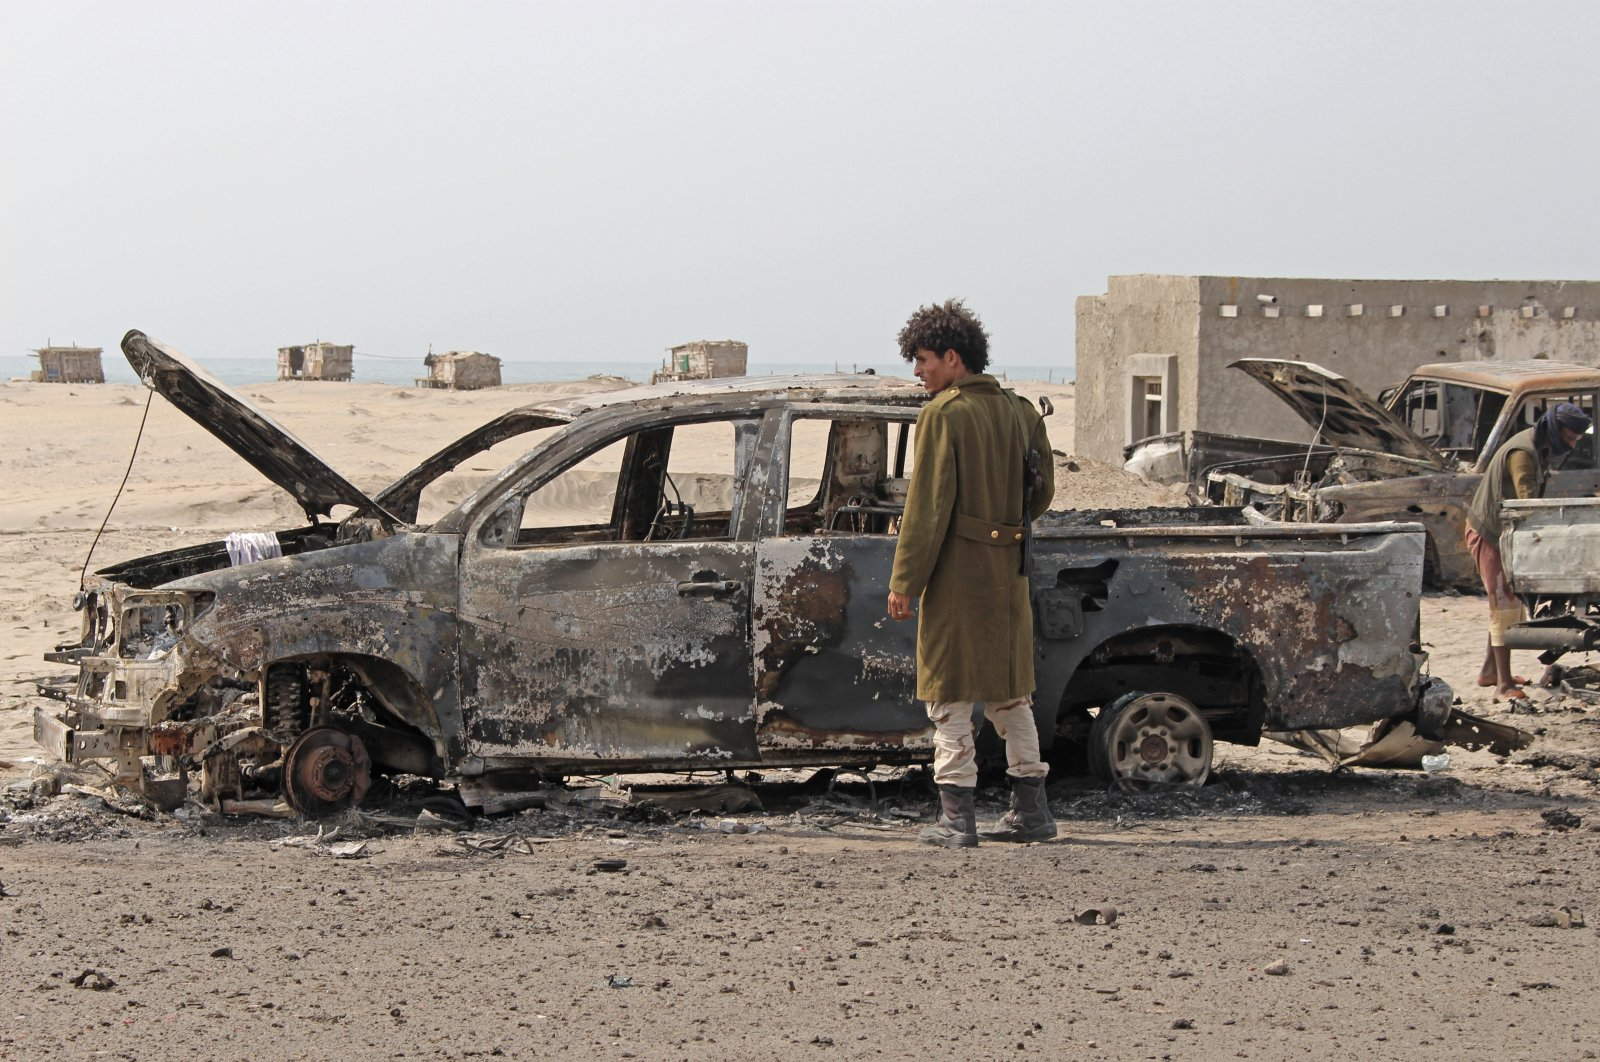 A Yemeni southern separatist fighter inspects the wreckage of government forces vehicles destroyed by UAE airstrikes near Aden, Yemen, Aug. 30, 2019. (AP Photo)